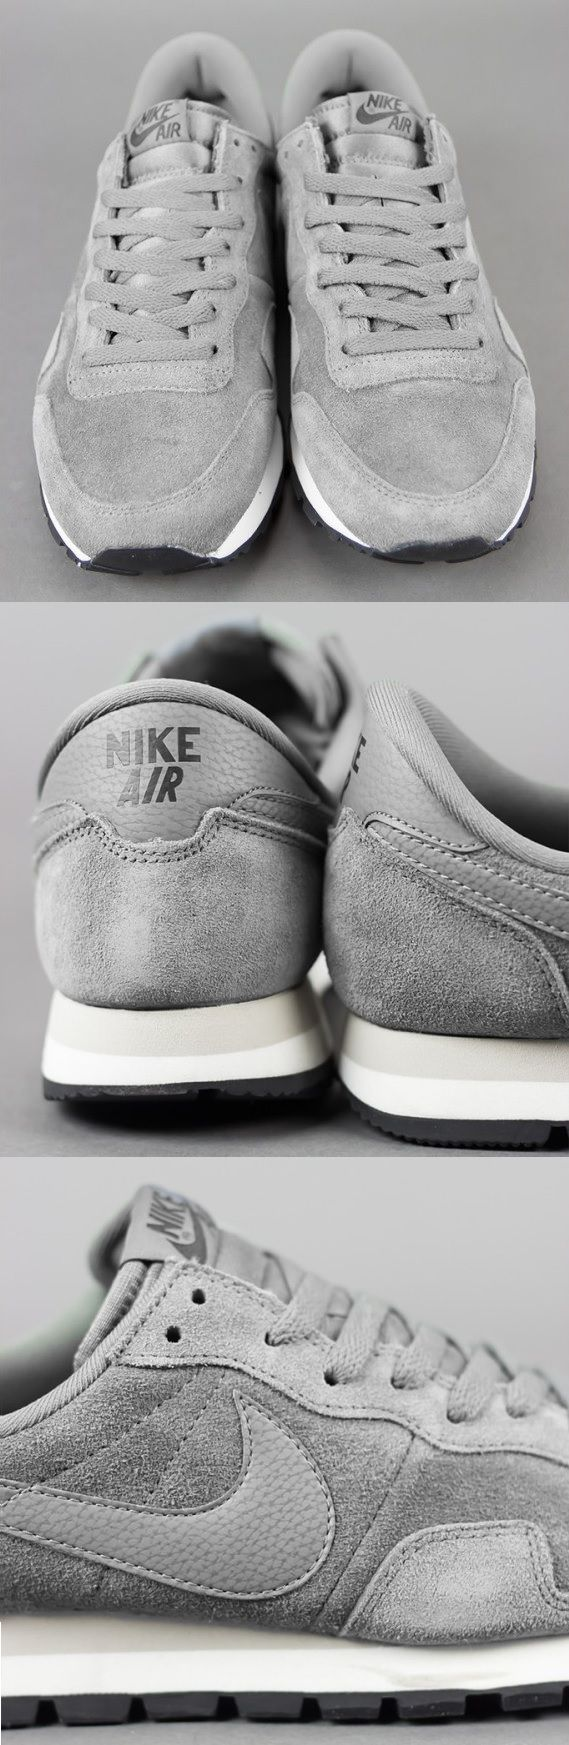 All grey everything: Nike Air Pegasus 83 Mercury Grey | Raddest Men's Fashion Looks On The Internet: http://www.raddestlooks.org